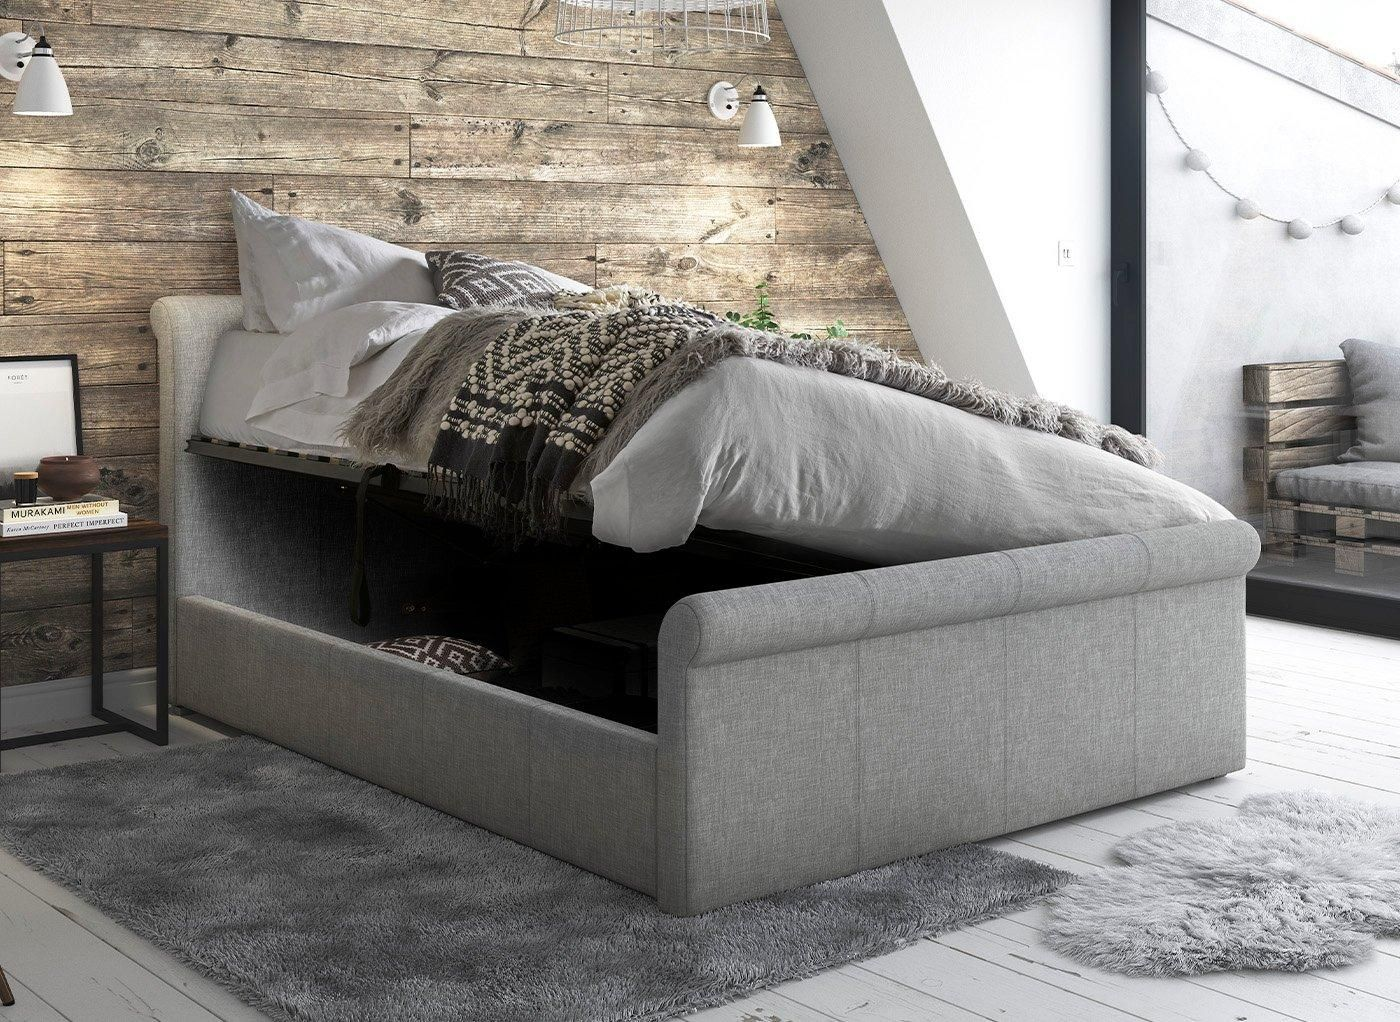 Wilson Upholstered Ottoman Bed Frame in 2020 Ottoman bed